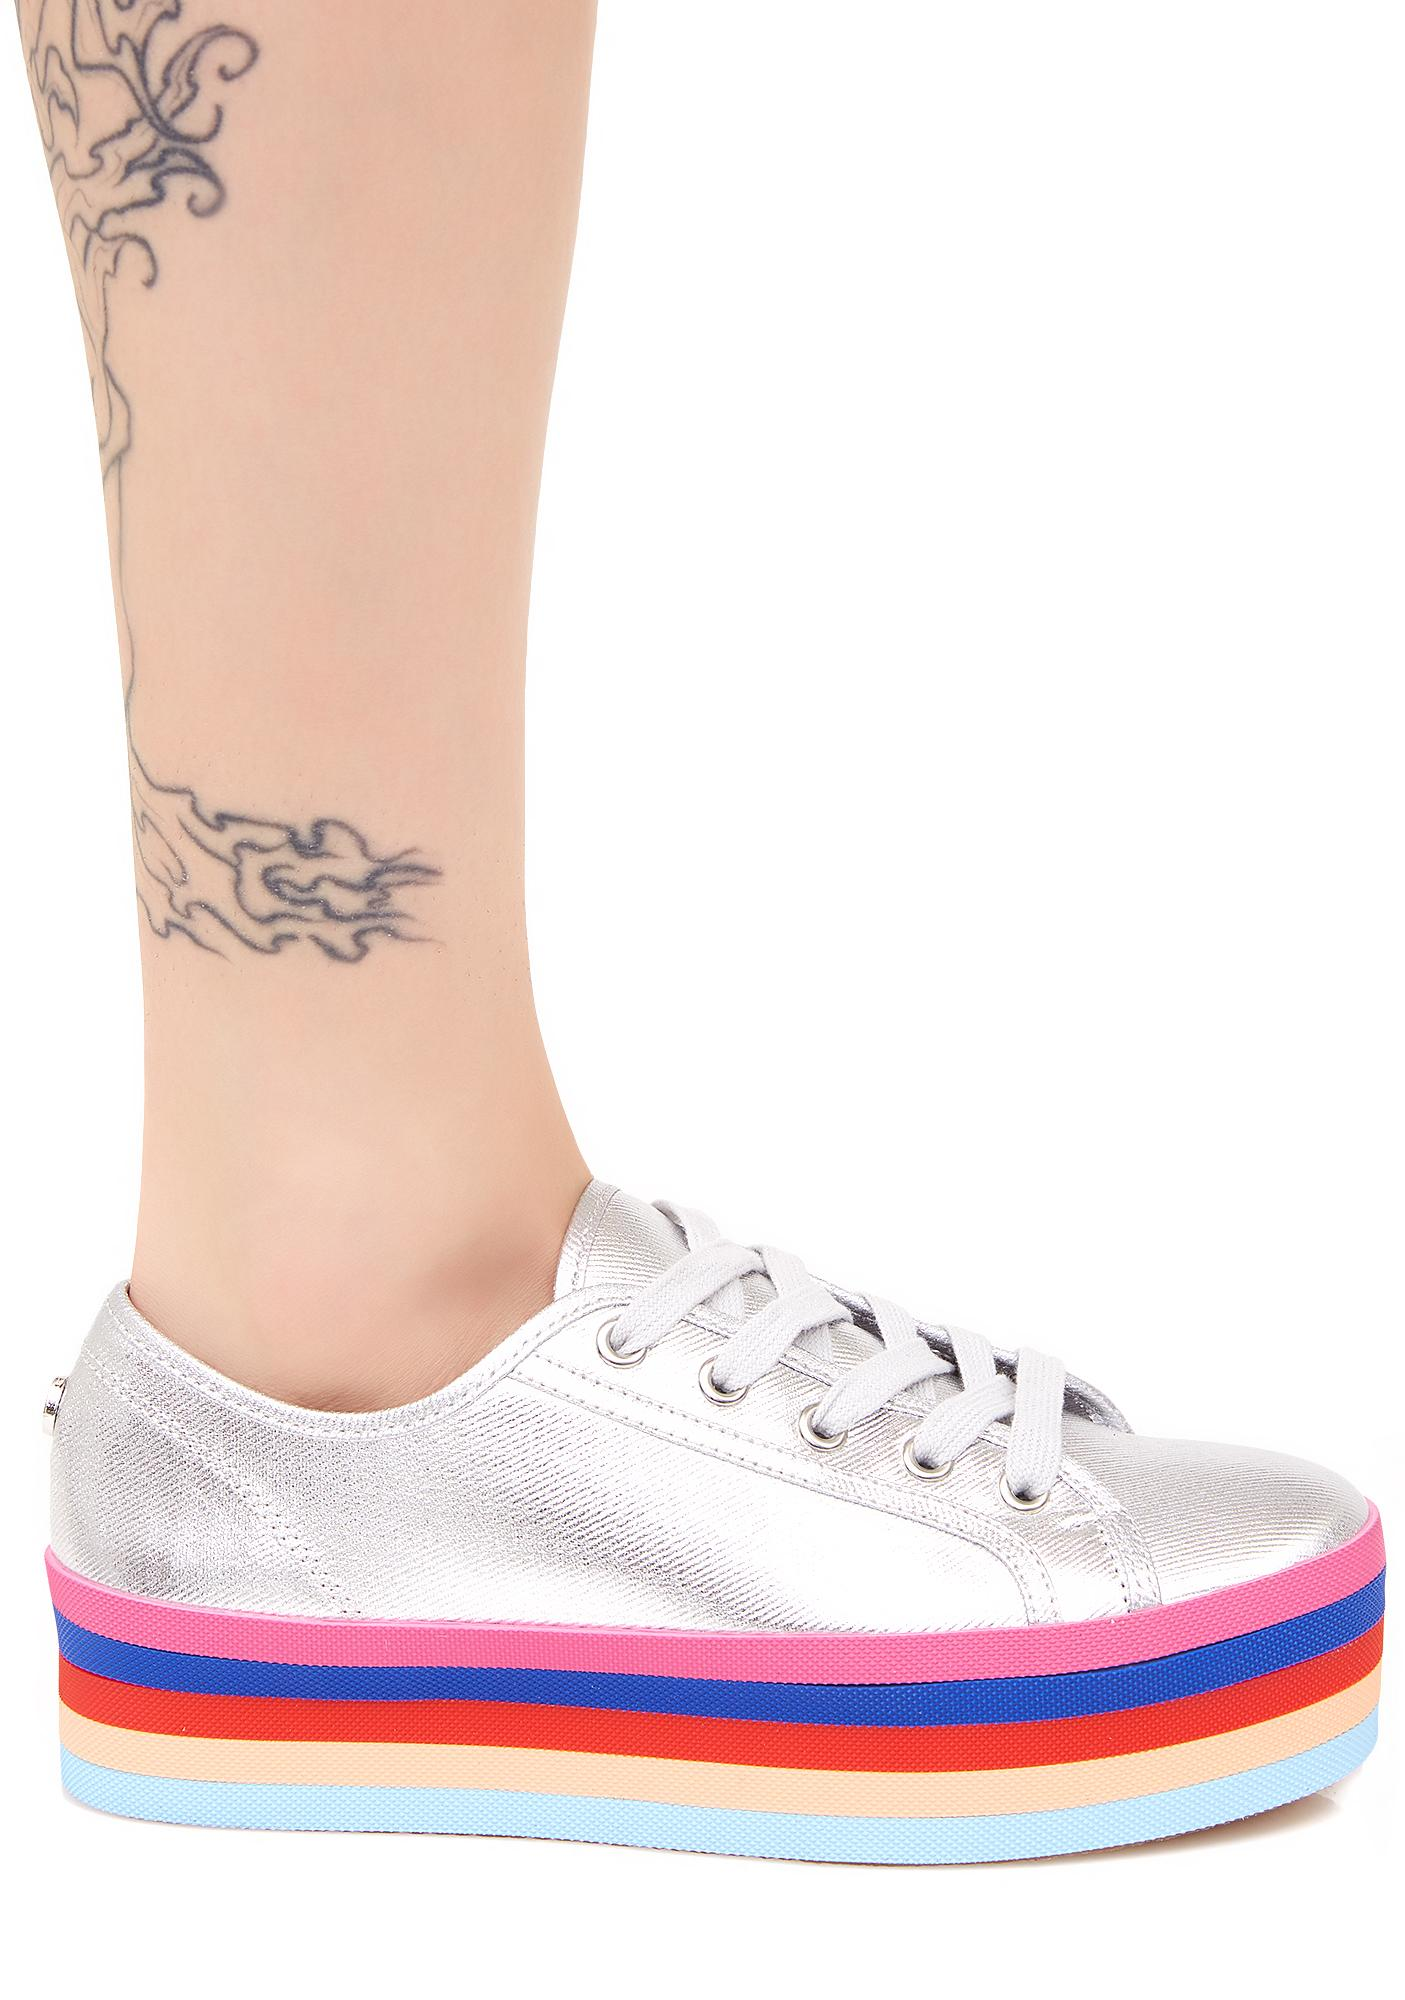 Steve Madden Rainbow Sole Lace-Up Shoes